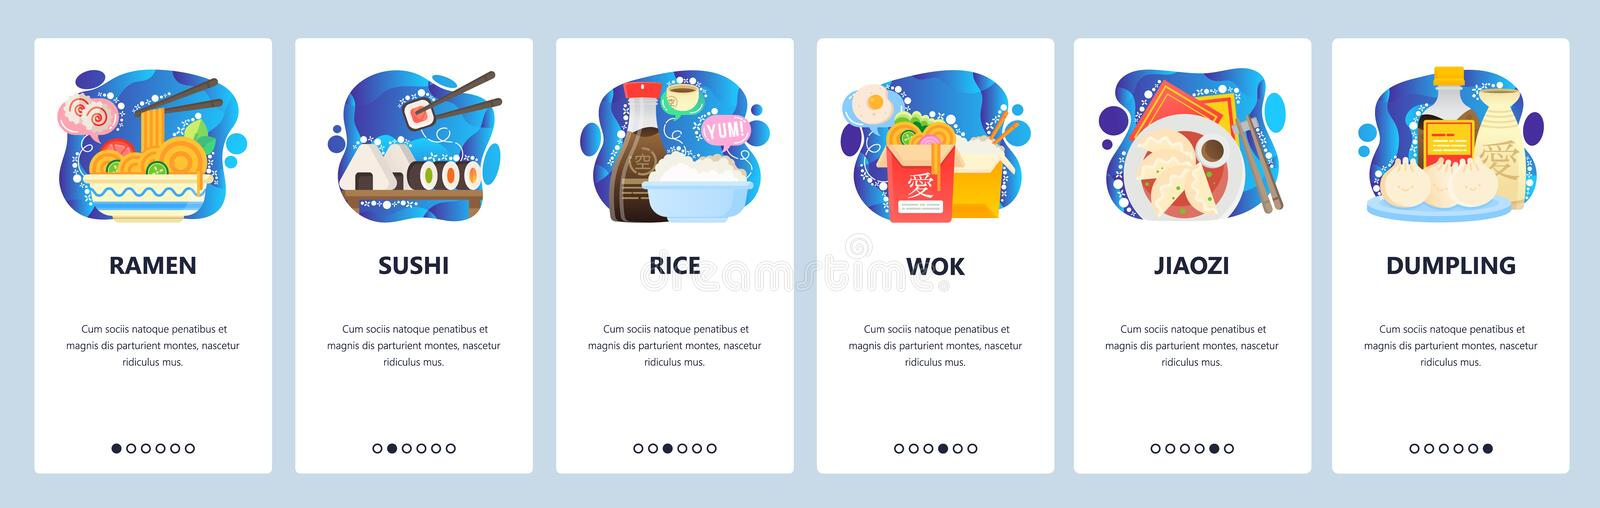 Mobile app onboarding screens. Traditional asian cuisine, restaurant menu meals, ramen, sushi, rice, wok. Vector banner stock illustration